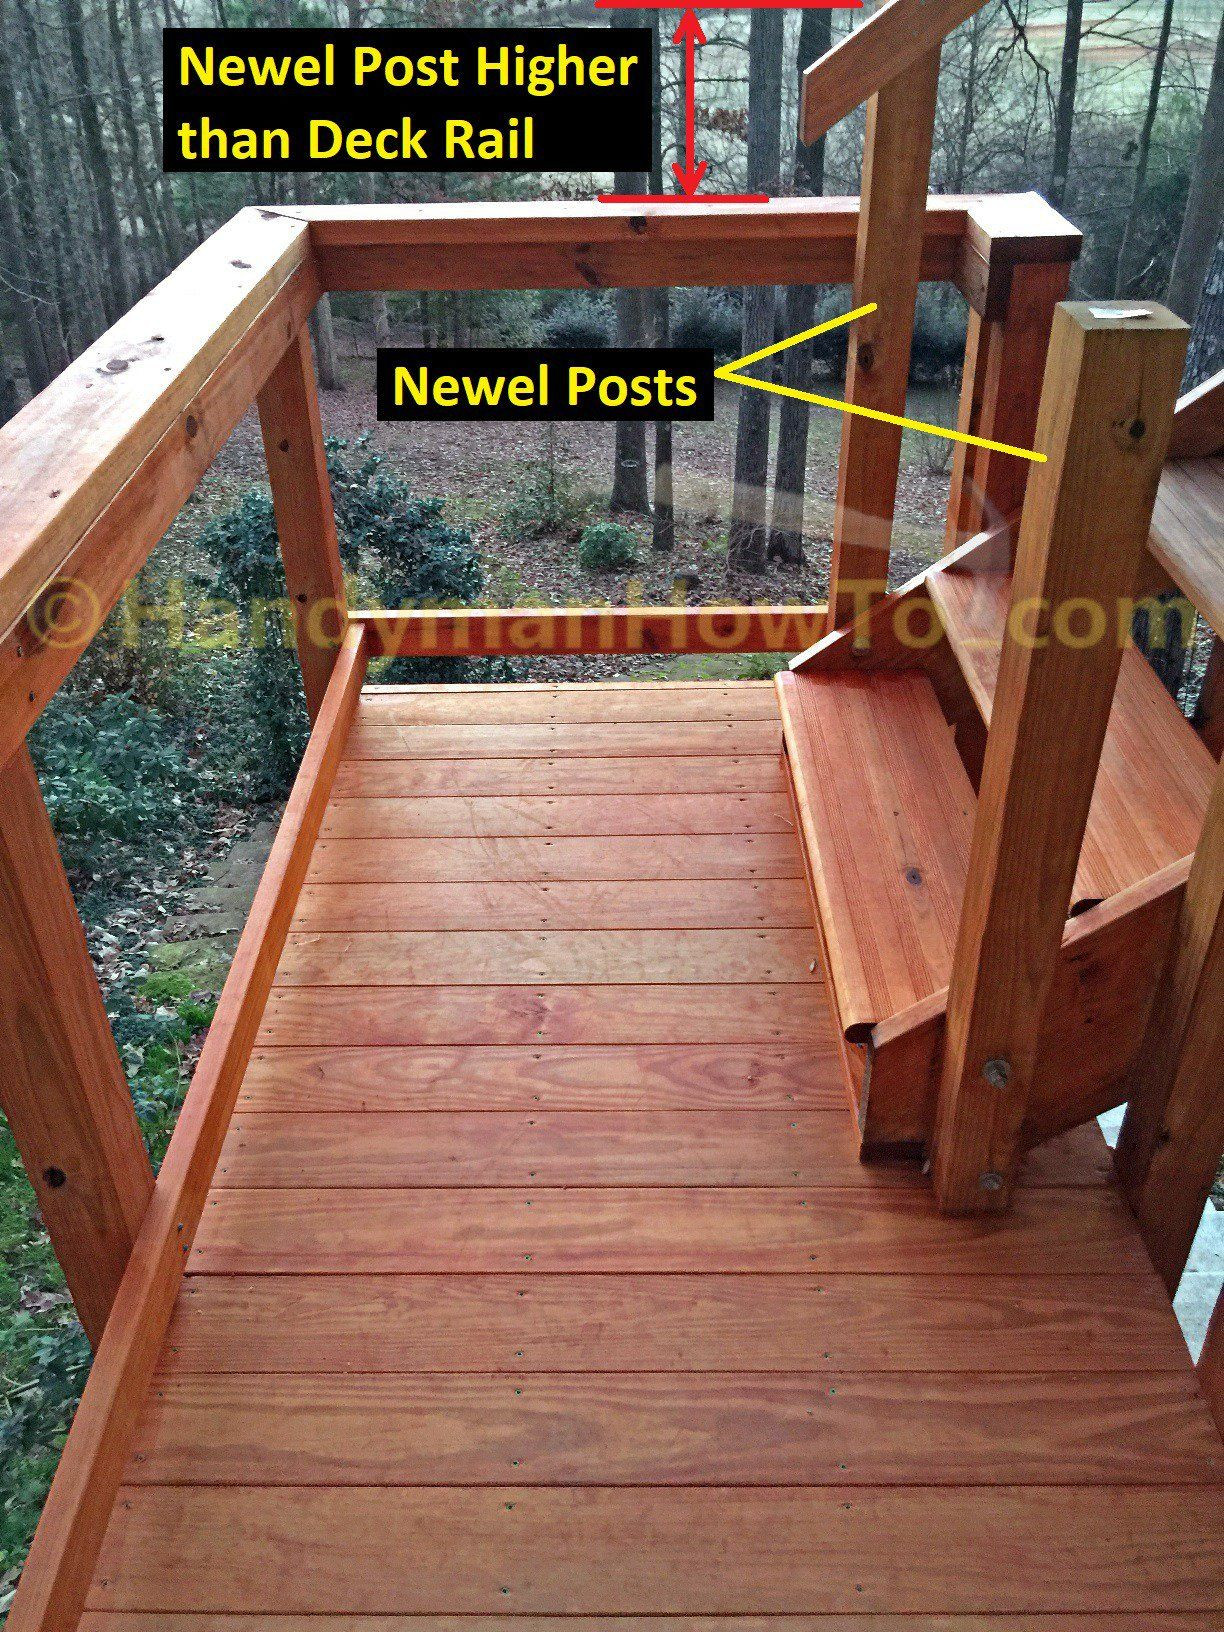 How To Build Code Compliant Deck Railing Building A